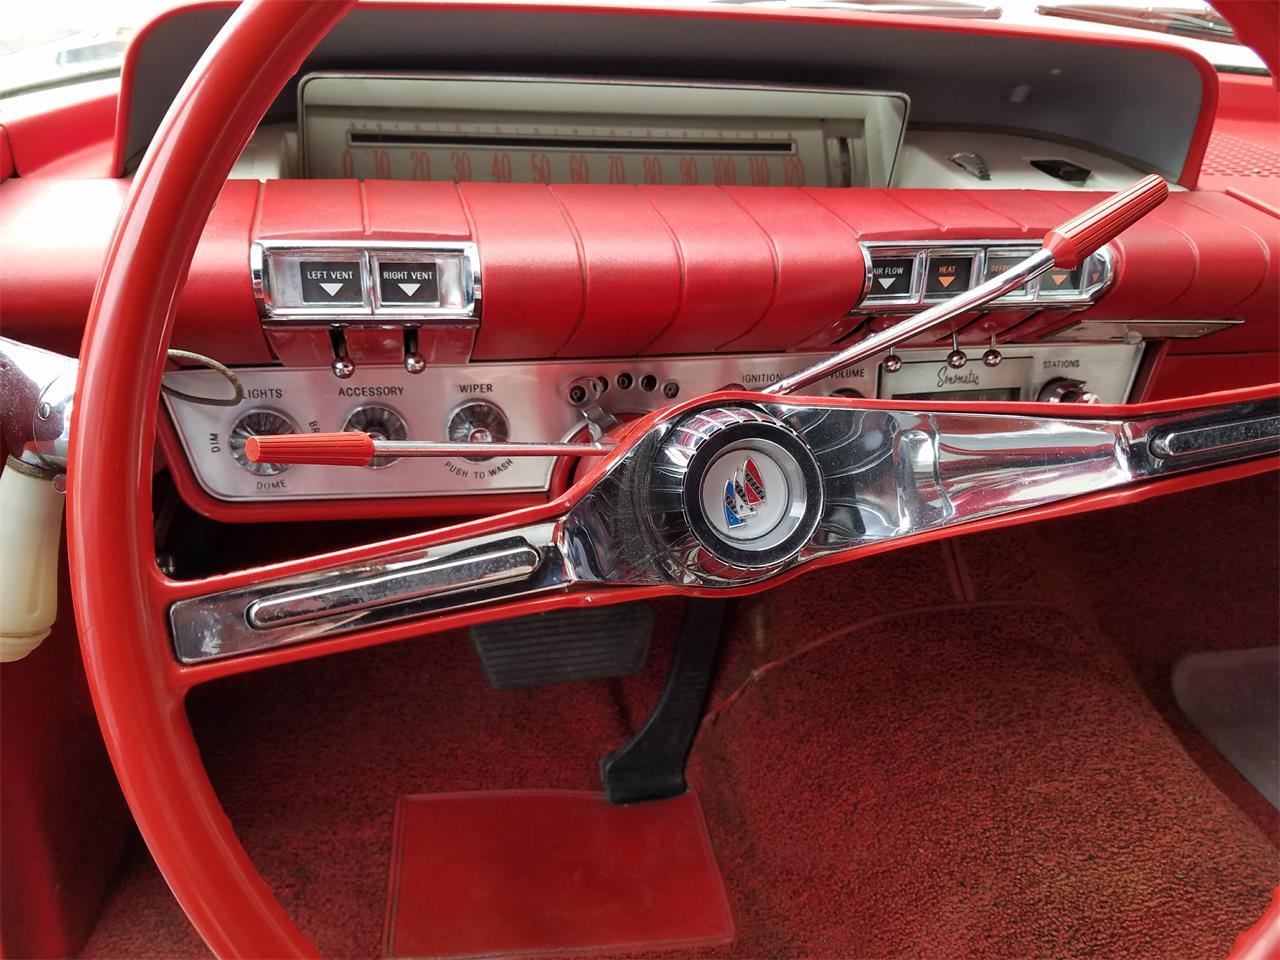 Large Picture of '60 Buick LeSabre located in DAMASCUS Oregon - $50,000.00 - N19V